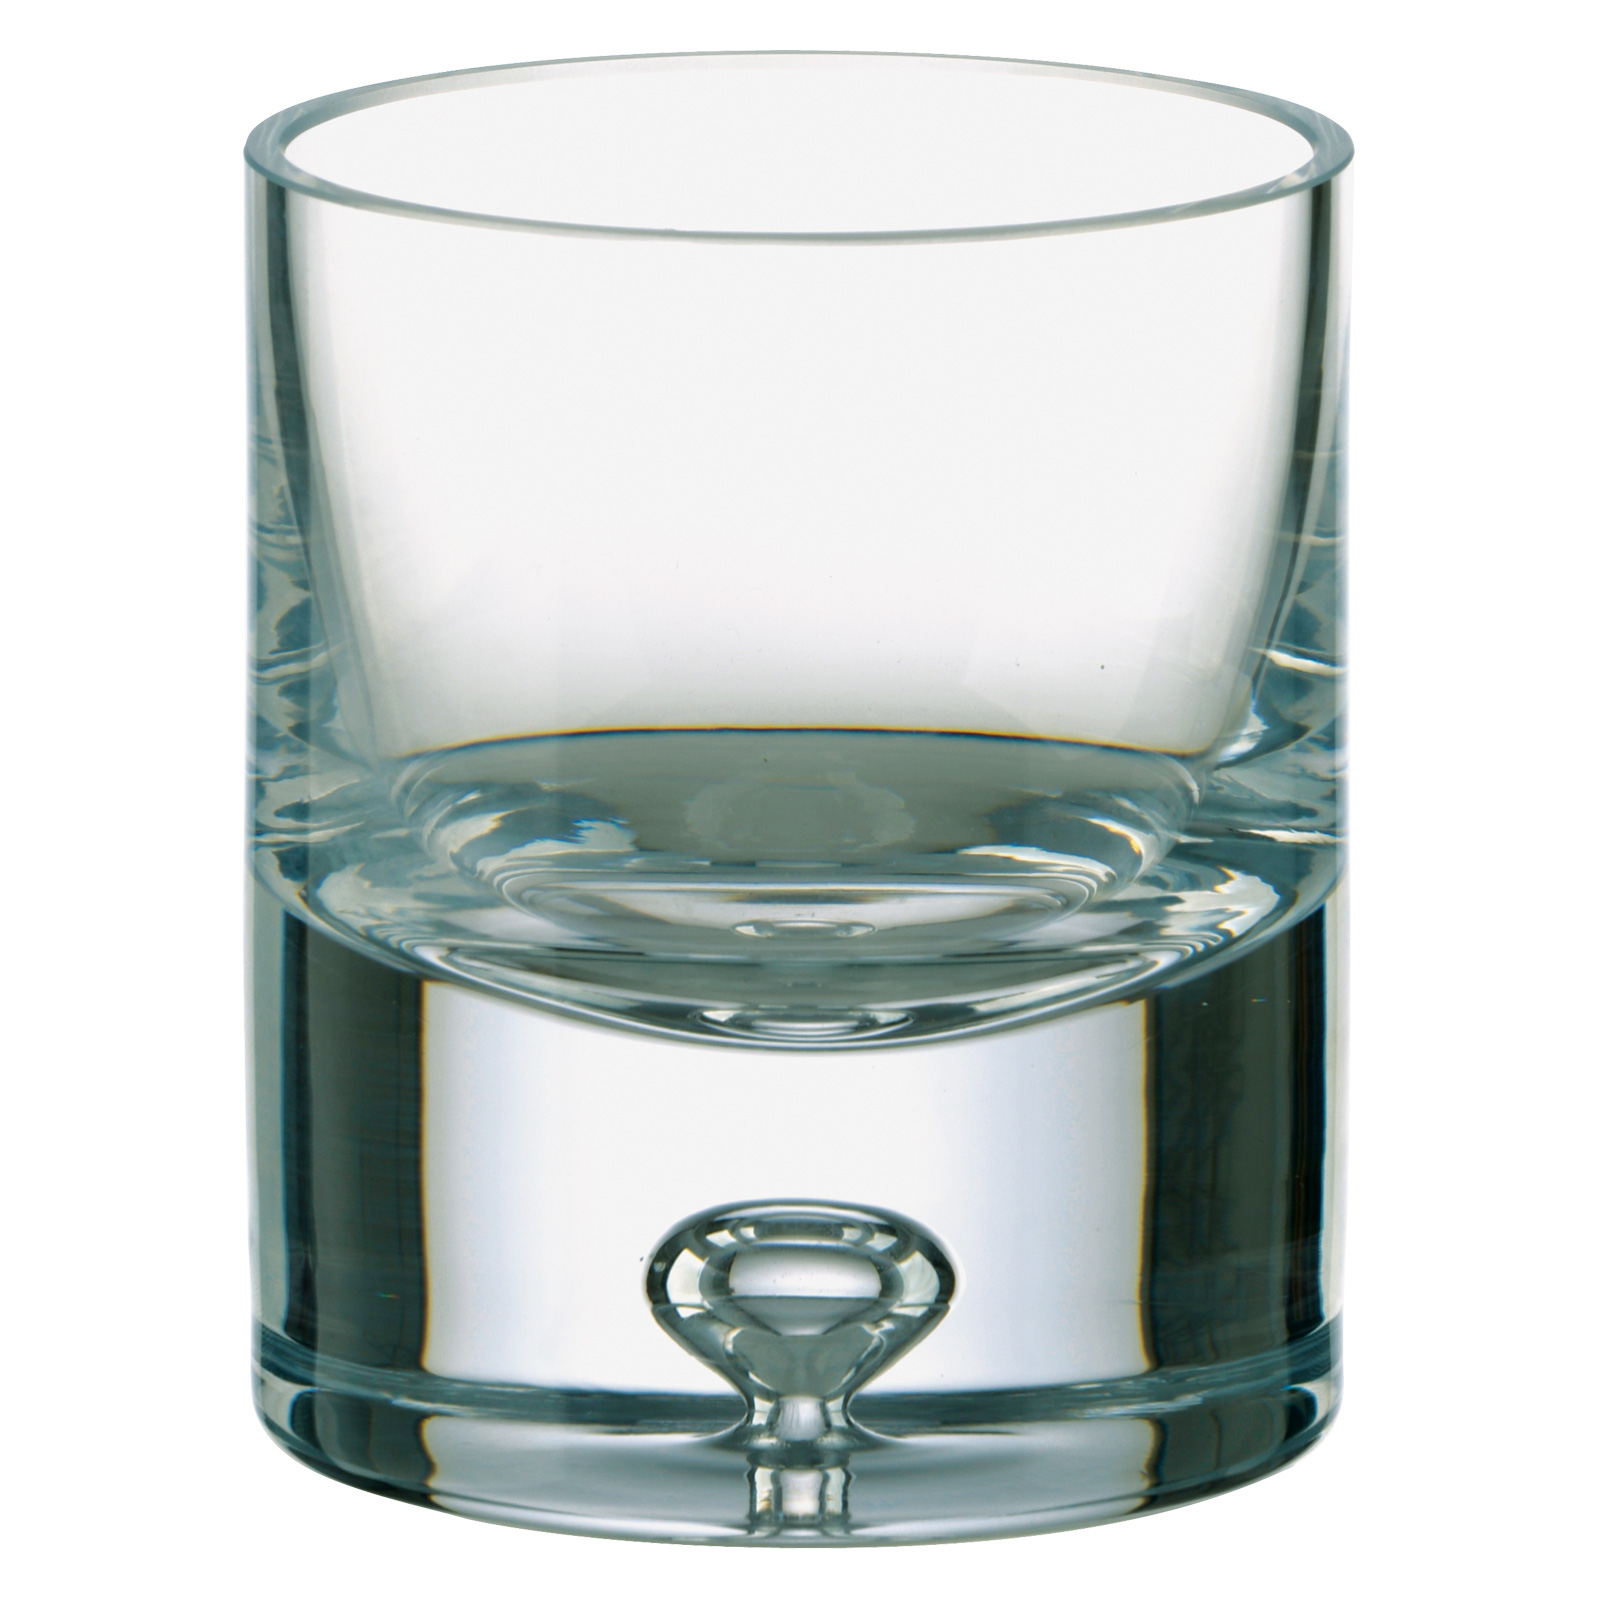 Set of 6 Bubble Base DOF Tumblers by Dornberger